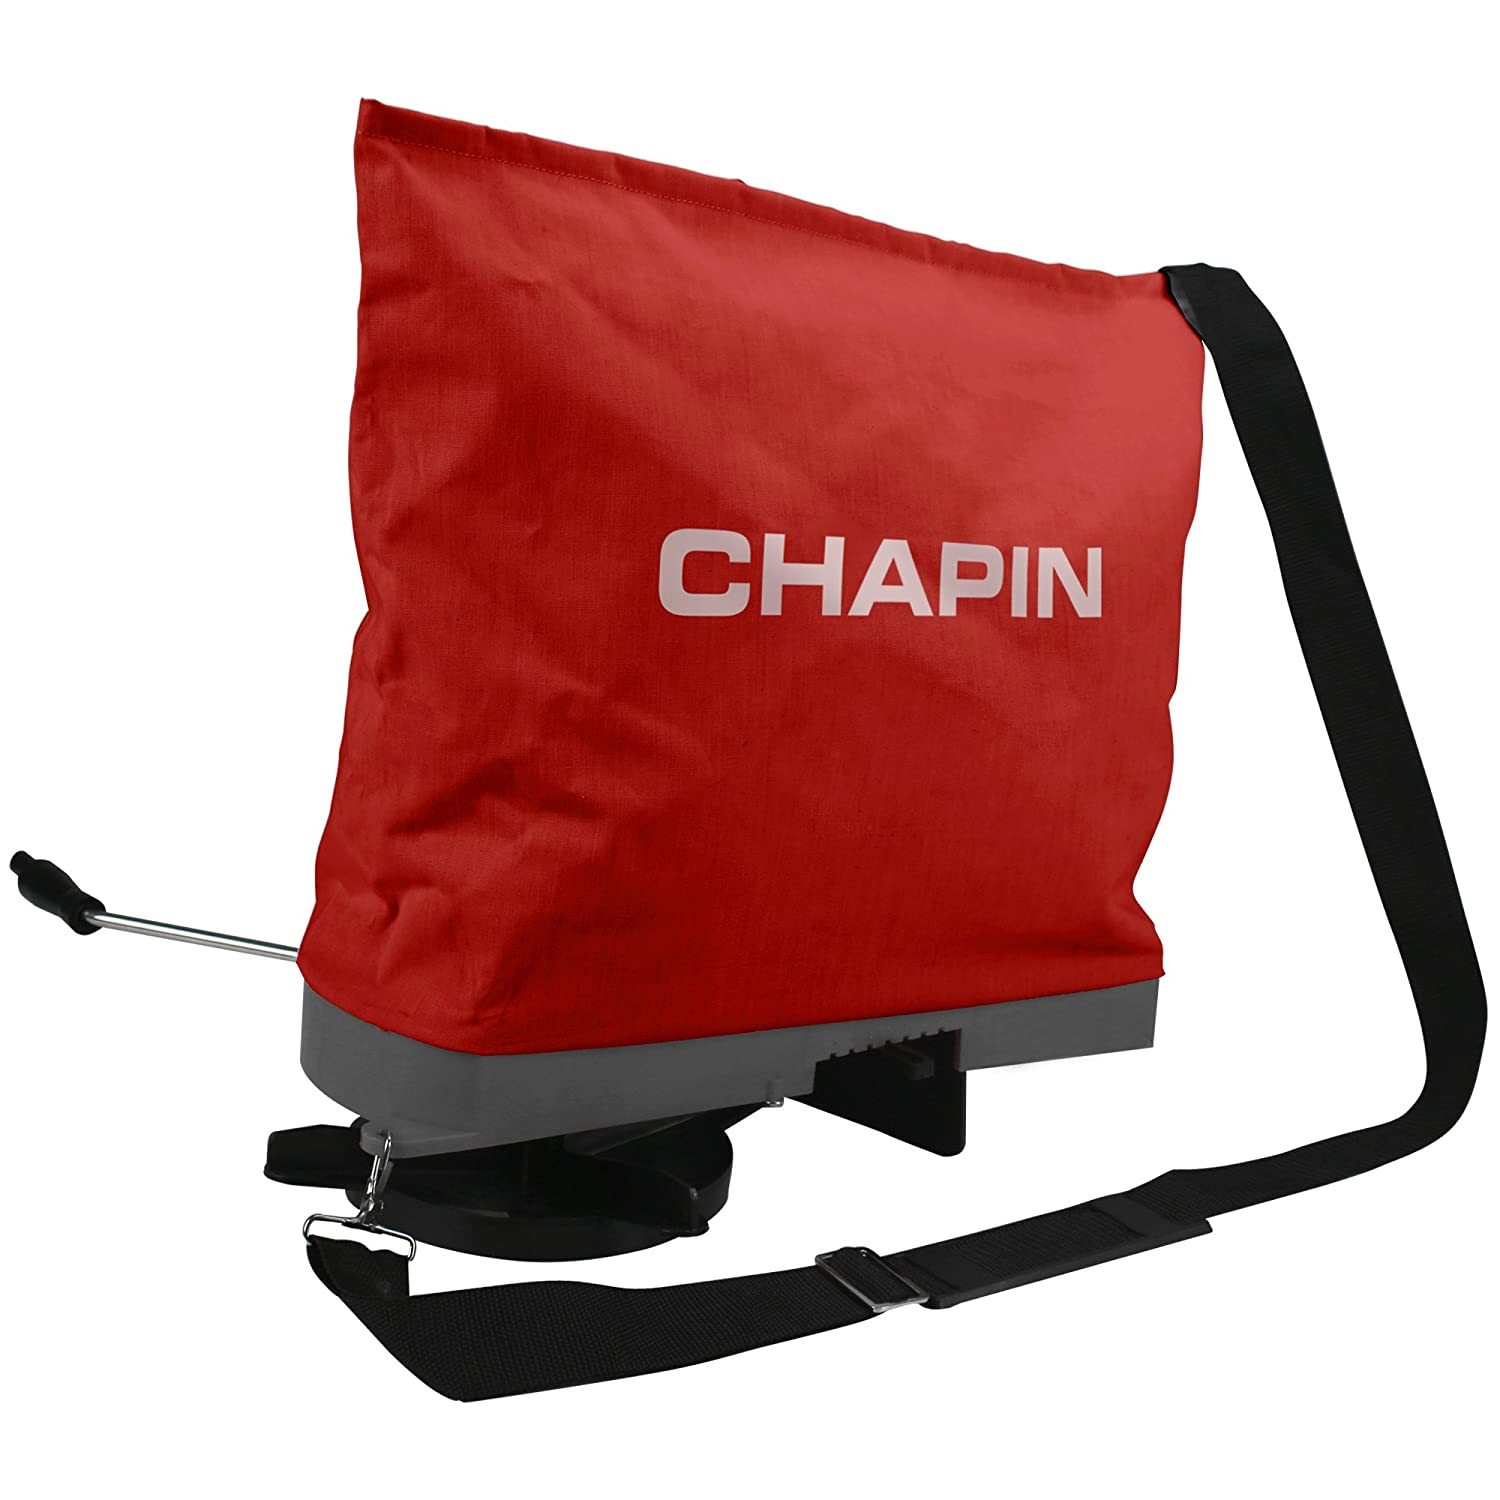 Chapin 84700A 25-Pound Professional Bag Seeder, (1 Bag Seeder/Package)